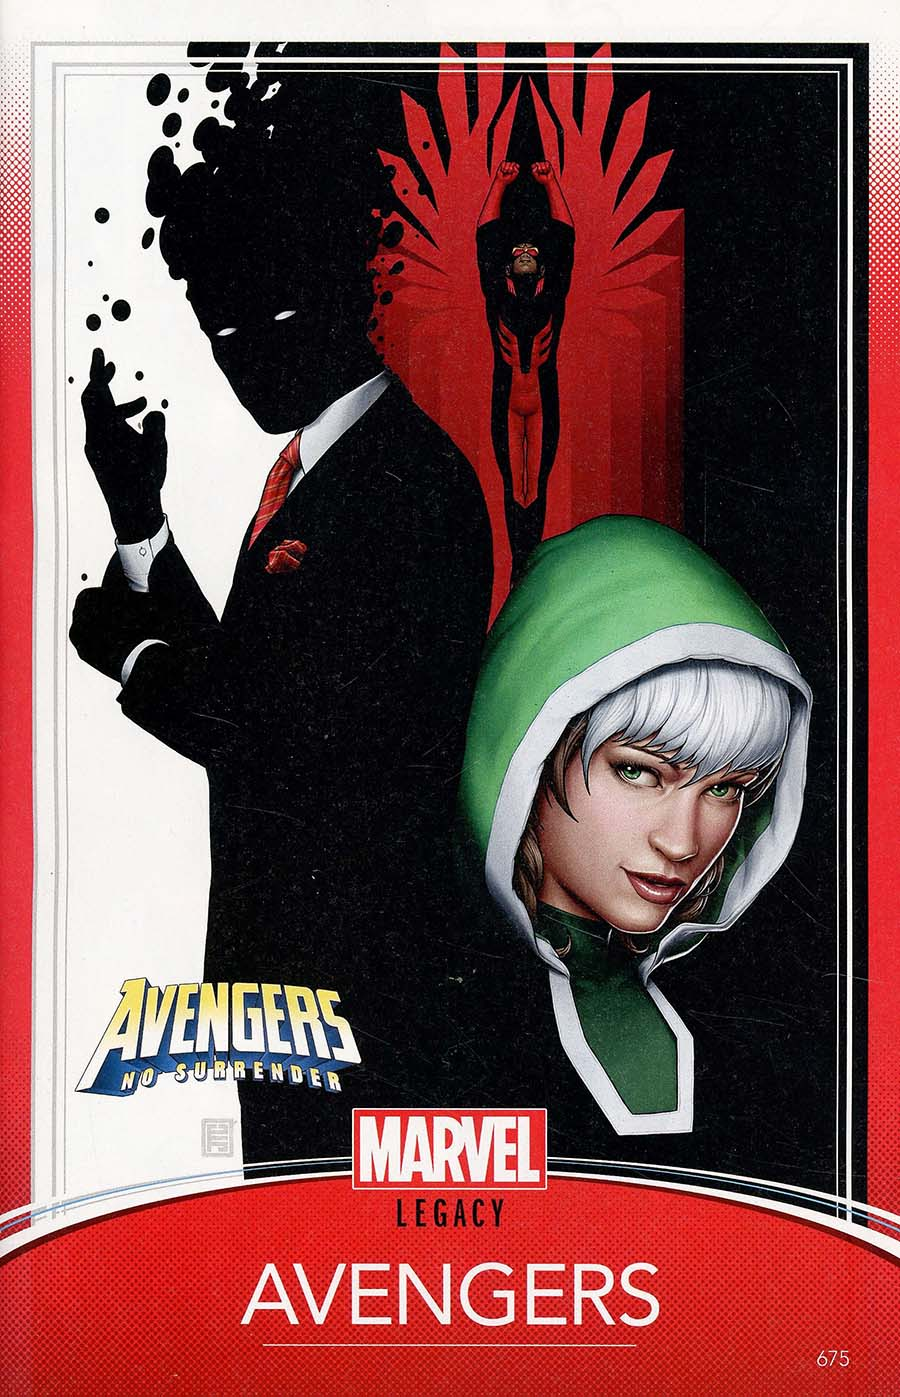 Avengers Vol 6 #675 Cover C Variant John Tyler Christopher Trading Card Cover (No Surrender Part 1)(Marvel Legacy Tie-In)